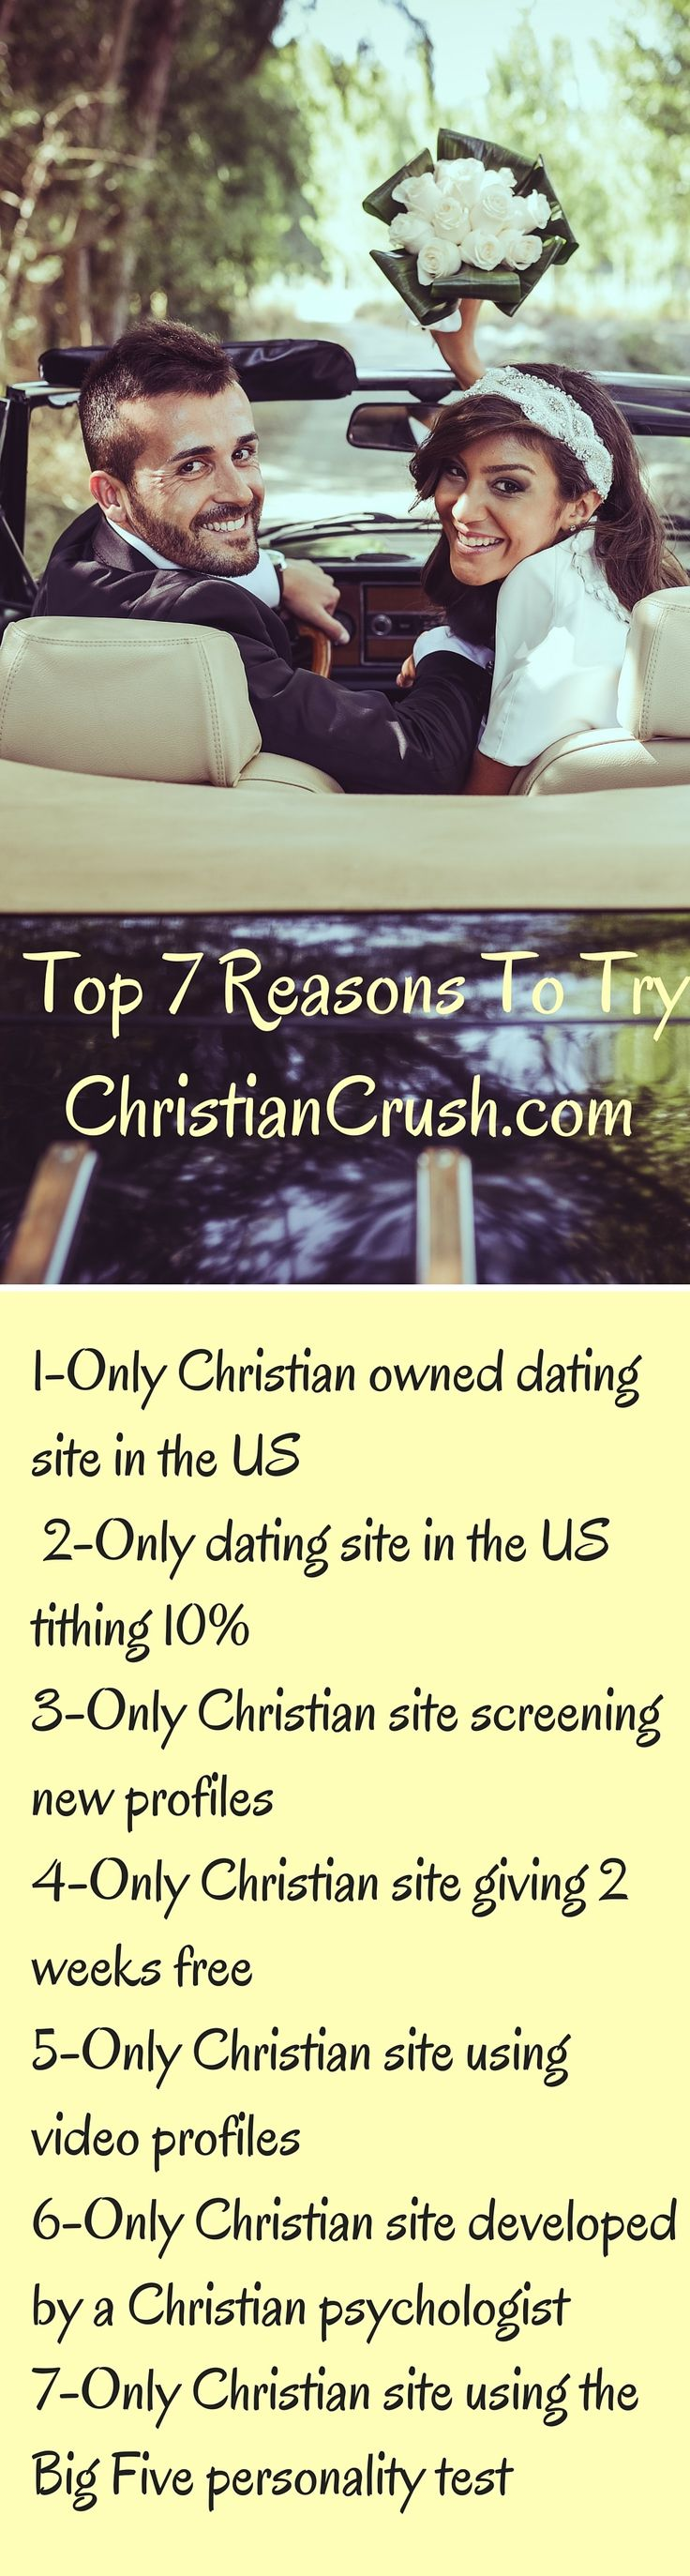 top dating websites in the us war robots wiki matchmaking